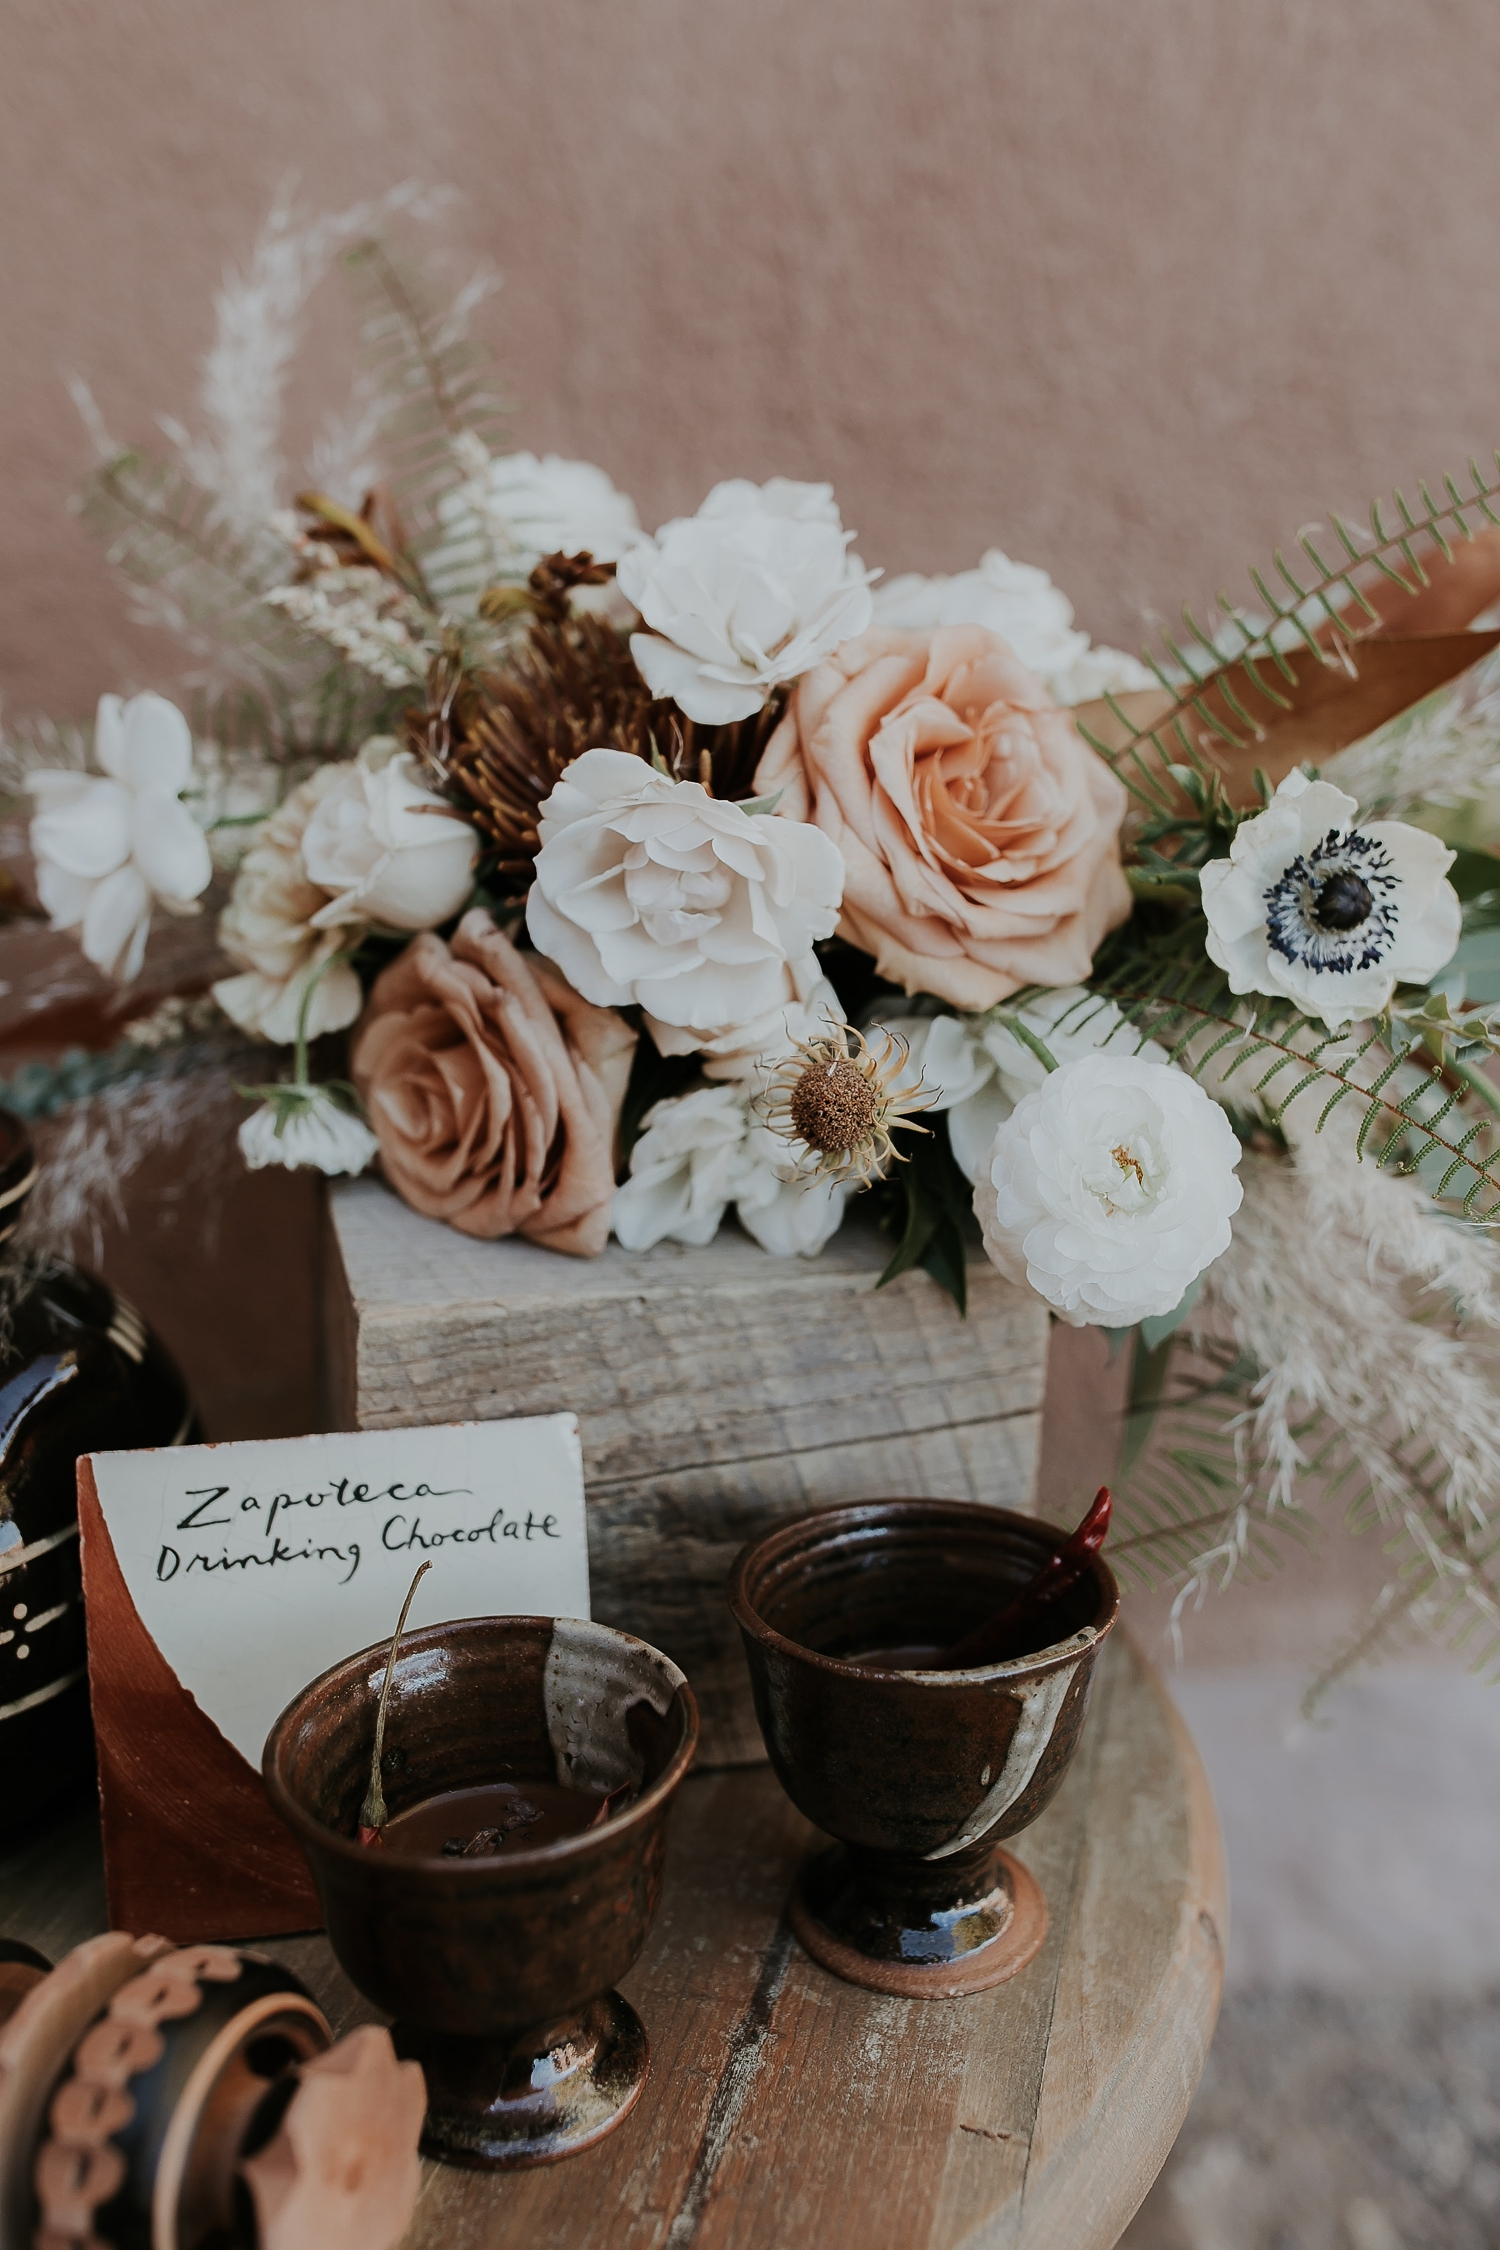 Alicia+lucia+photography+-+albuquerque+wedding+photographer+-+santa+fe+wedding+photography+-+new+mexico+wedding+photographer+-+new+mexico+ghost+ranch+wedding+-+styled+wedding+shoot_0012.jpg